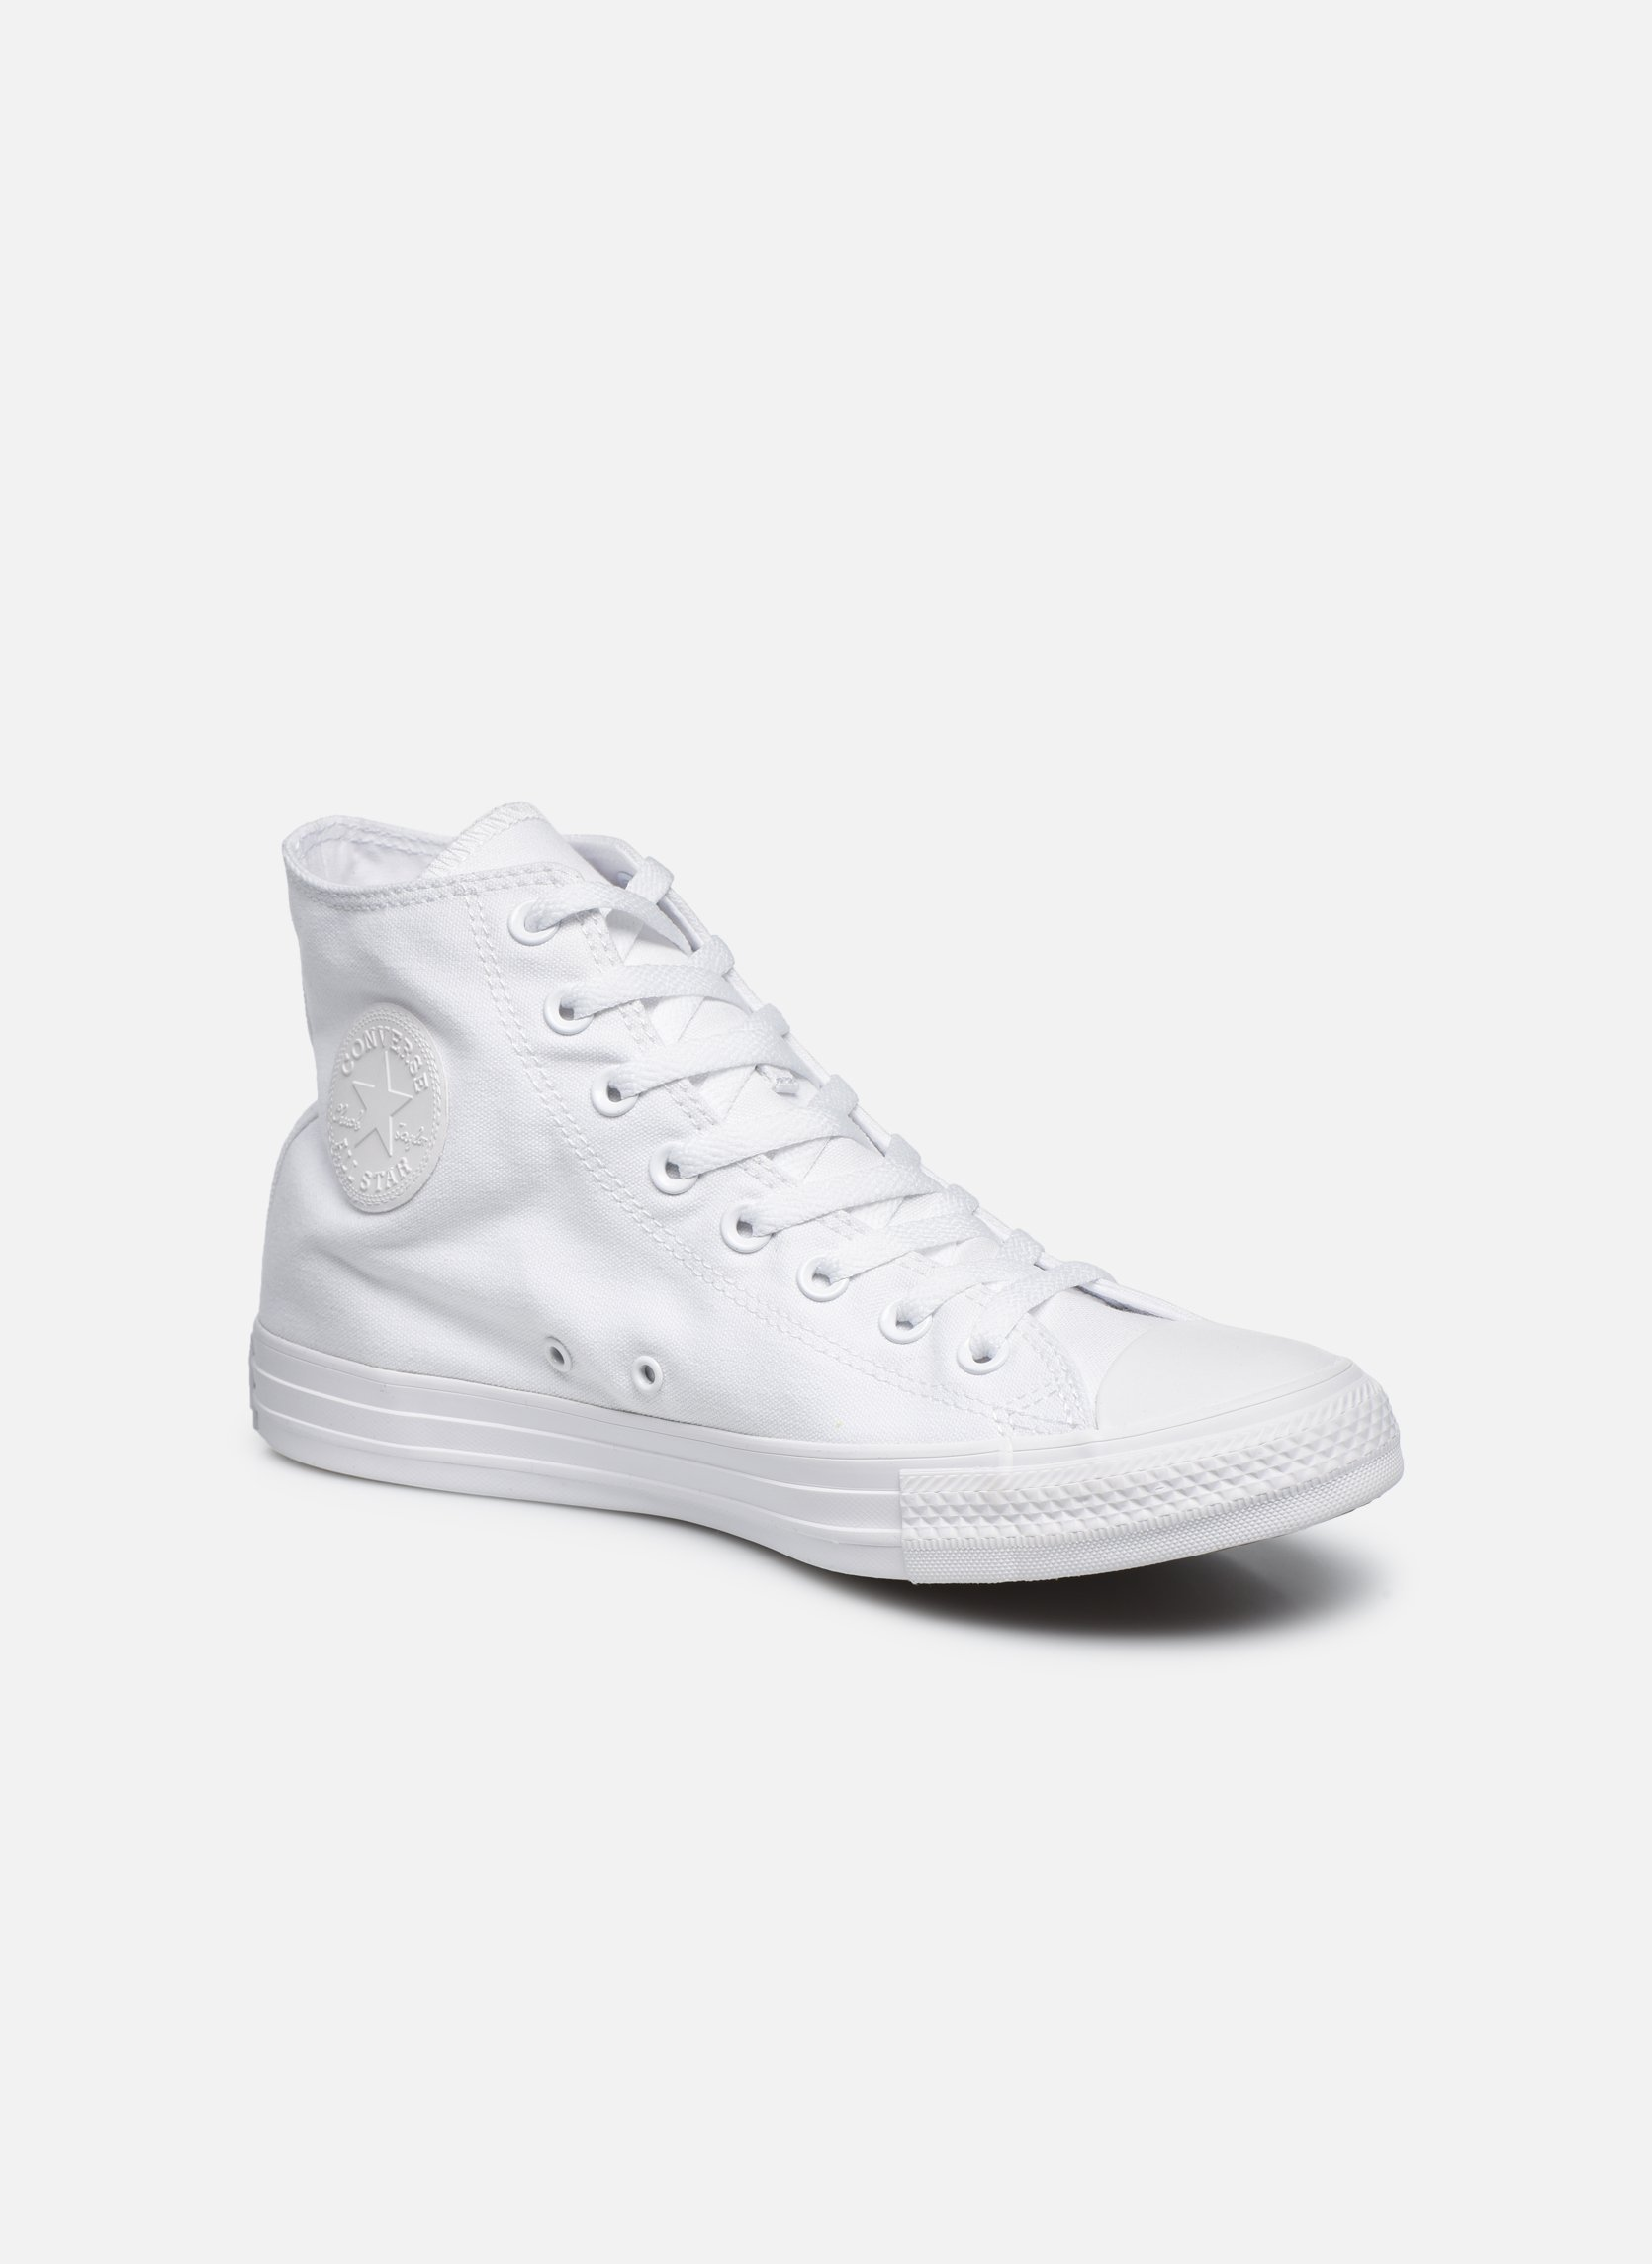 Converse Chuck Taylor All Star Monochrome Canvas Hi M